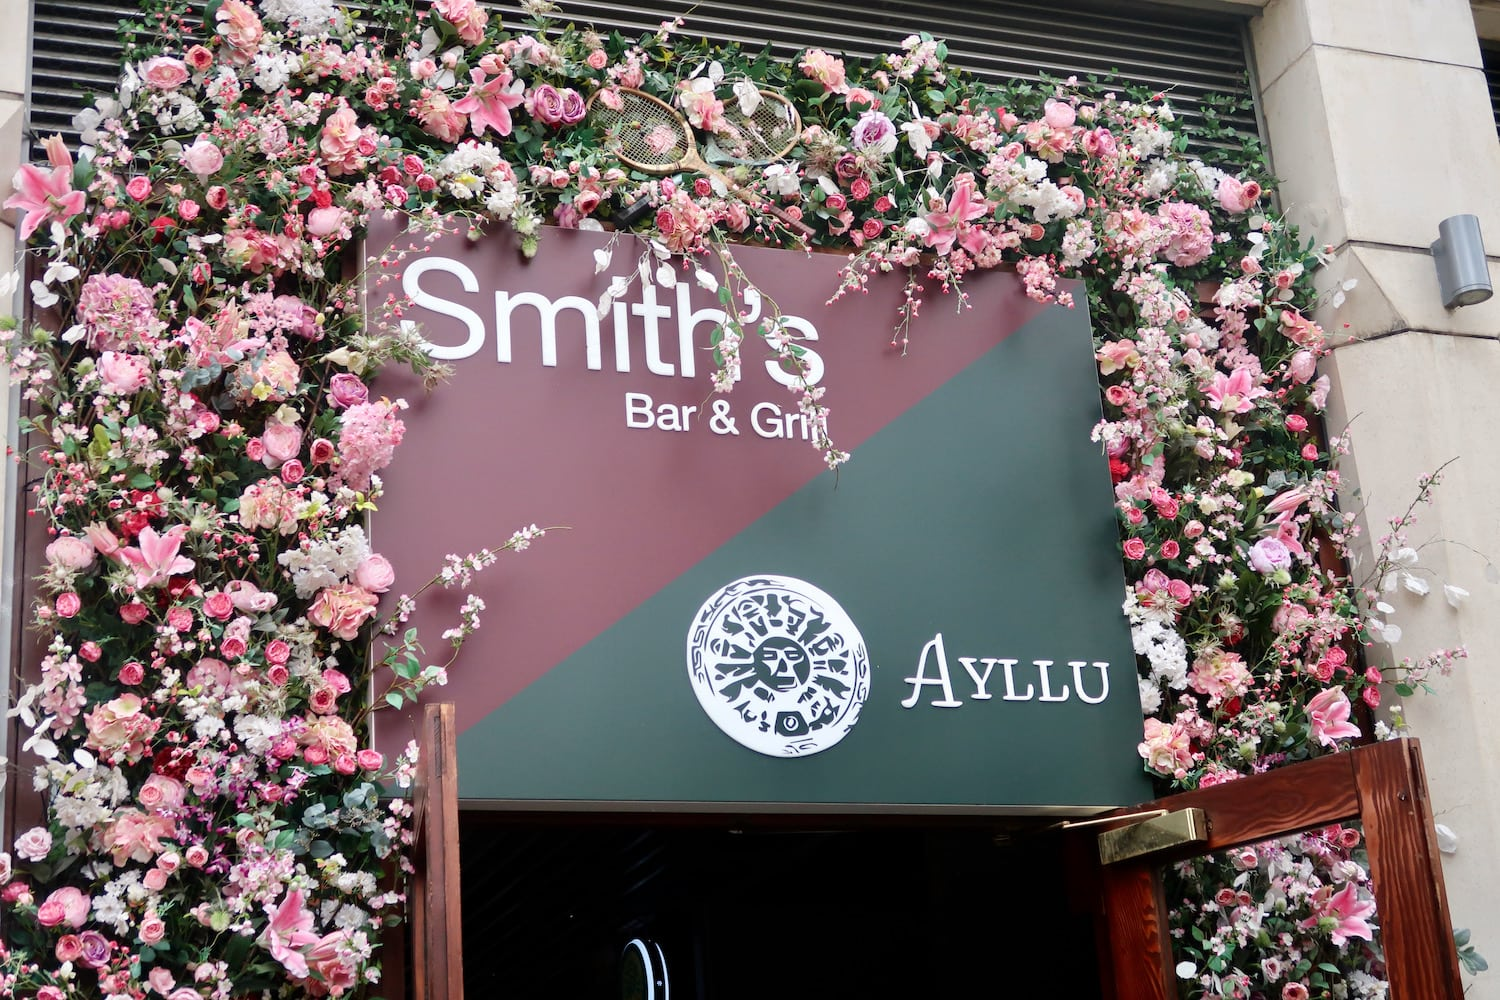 Smiths Bar and Grill